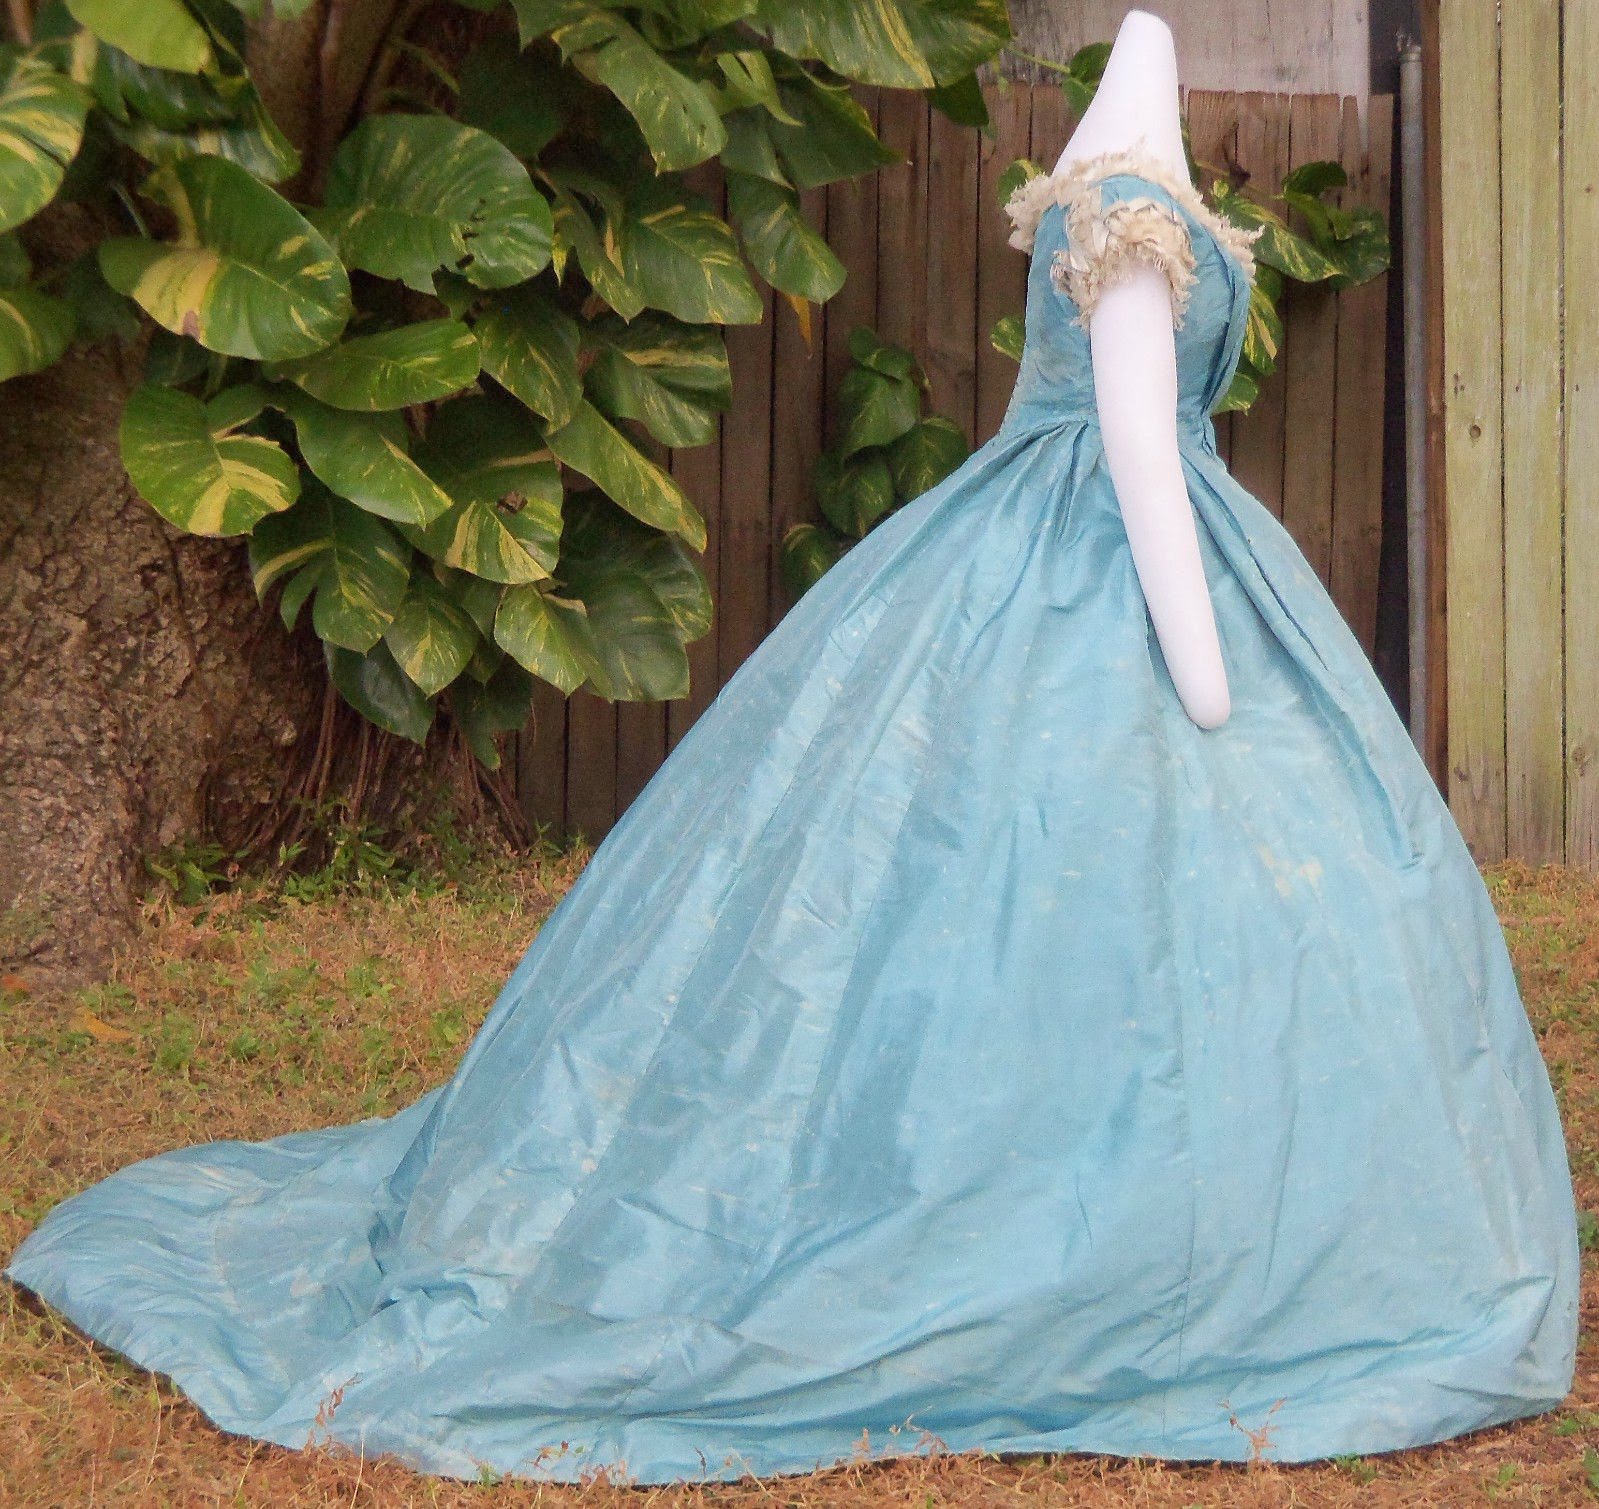 All The Pretty Dresses: American Civil War Era Ball Gown in Robin\'s ...